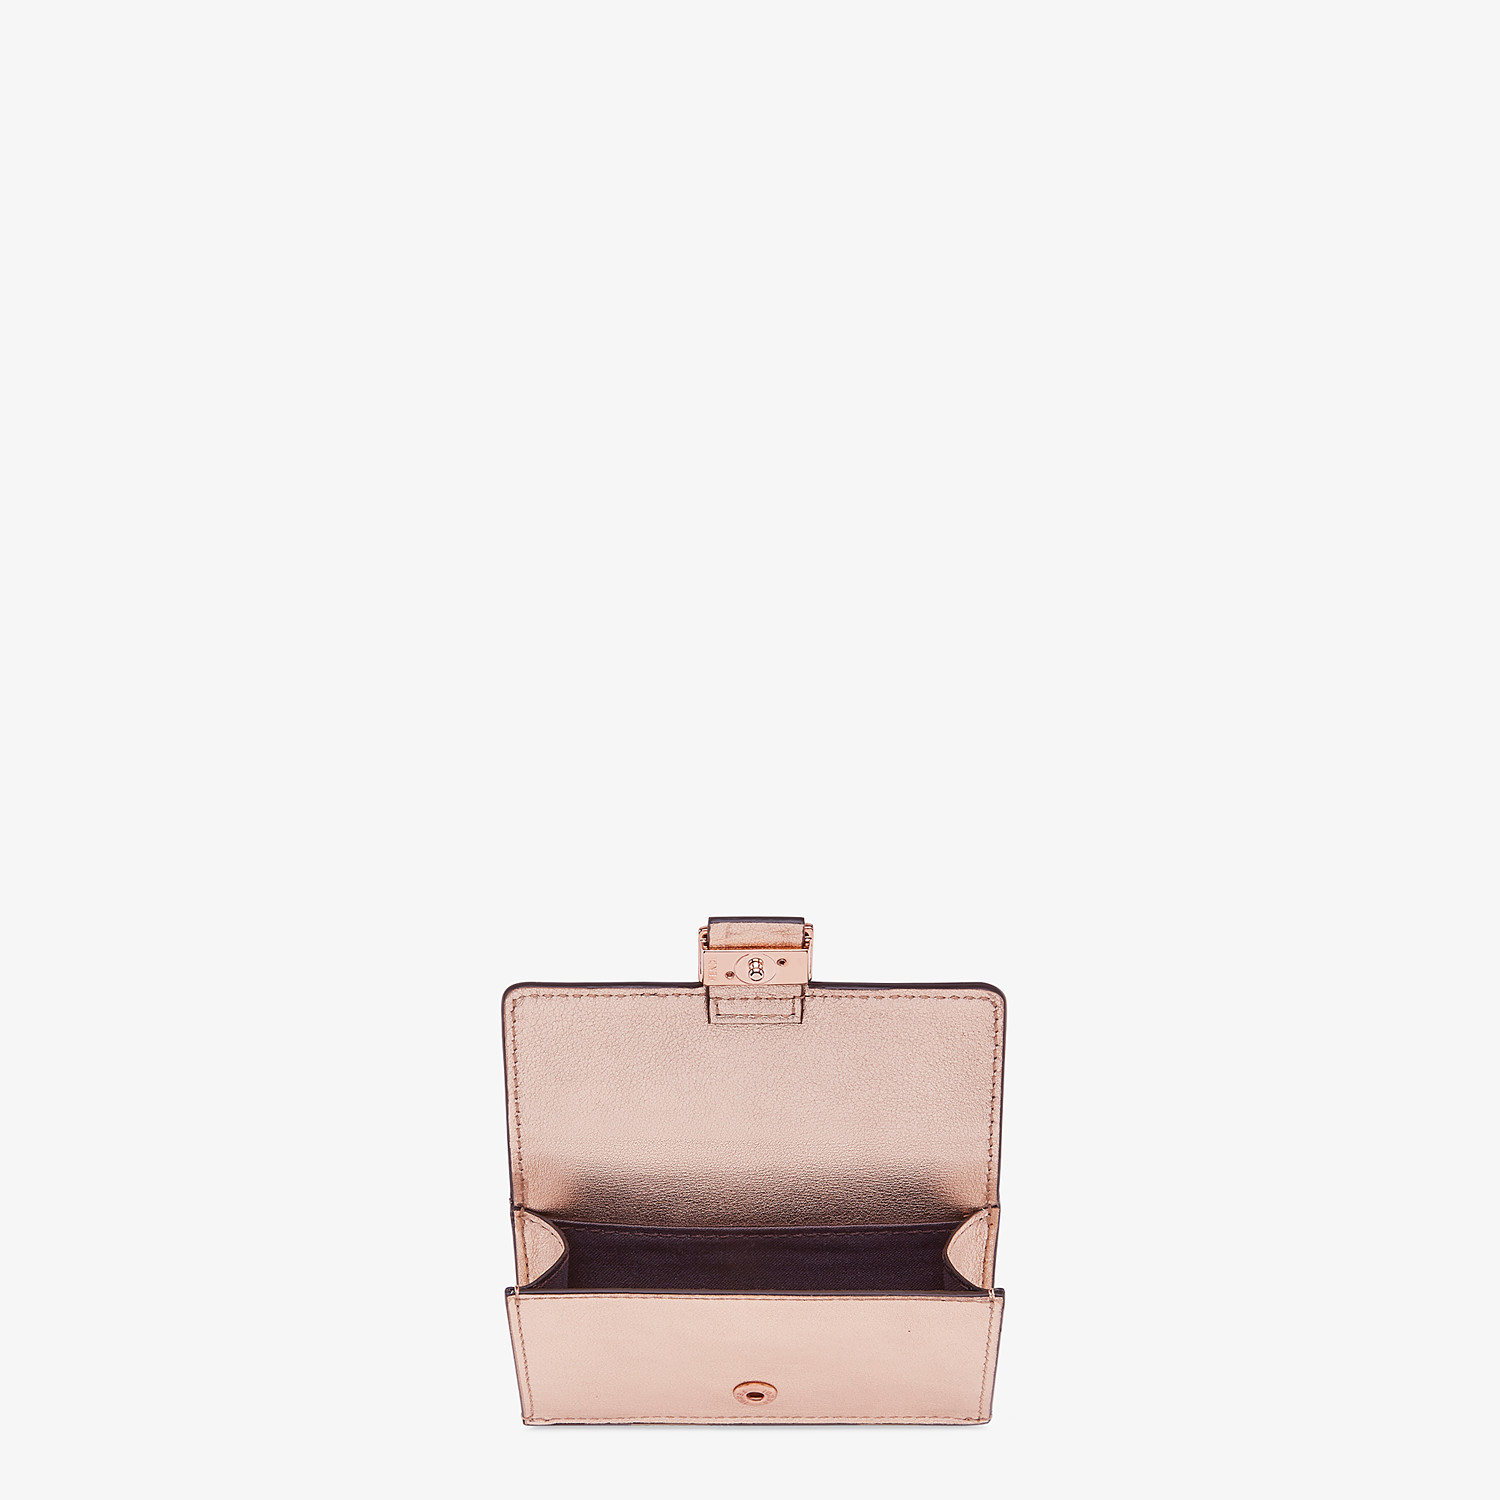 FENDI CARD HOLDER - Pink leather cardholder - view 3 detail